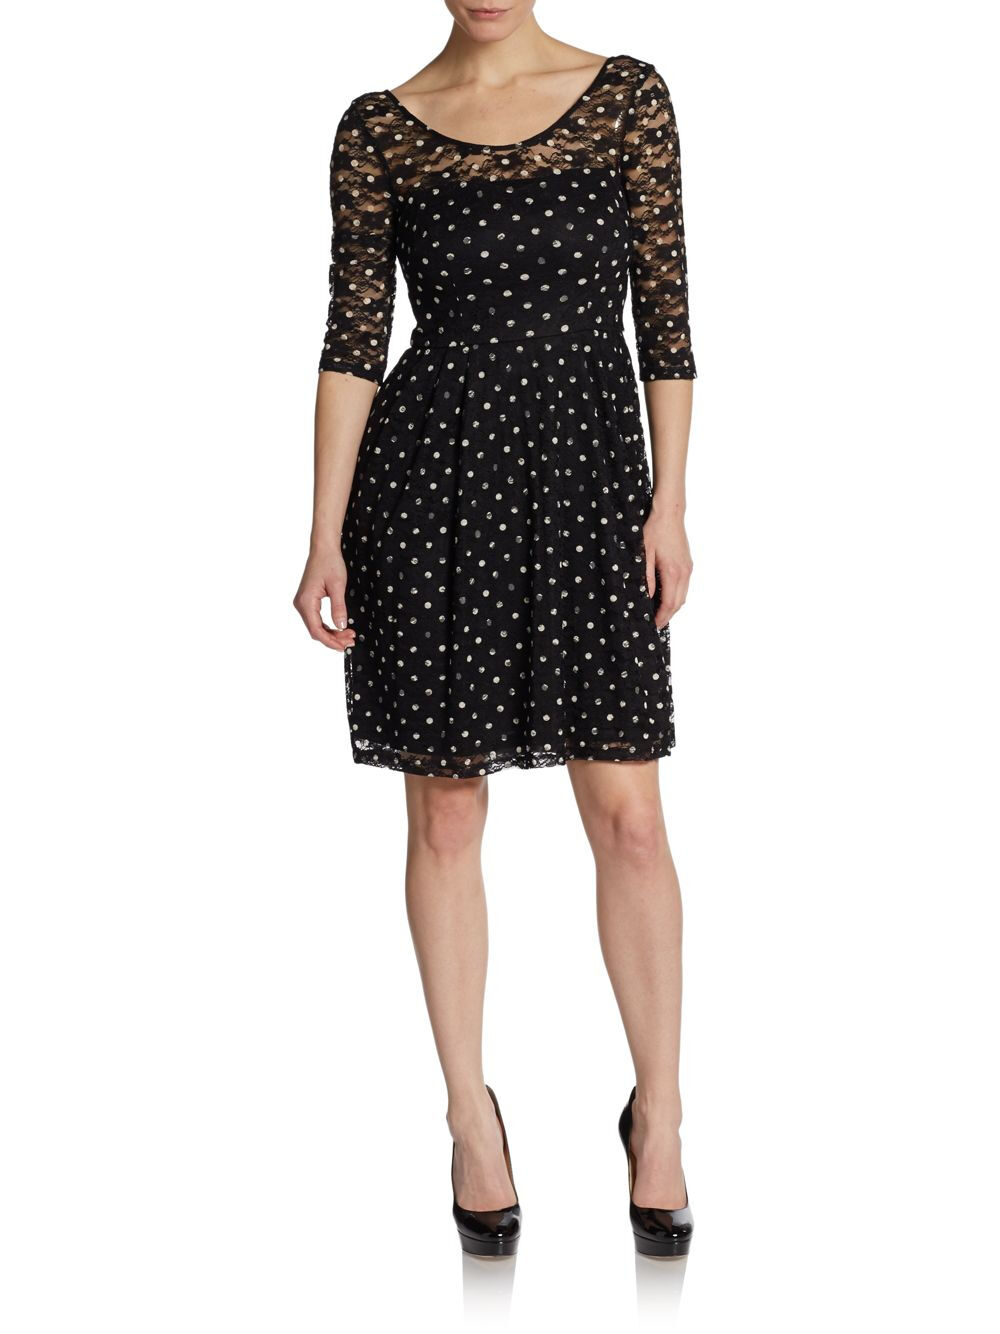 NWT BETSEY JOHNSON schwarz Dotted Lace Illusion Dress Polka 3 4 Sleeves